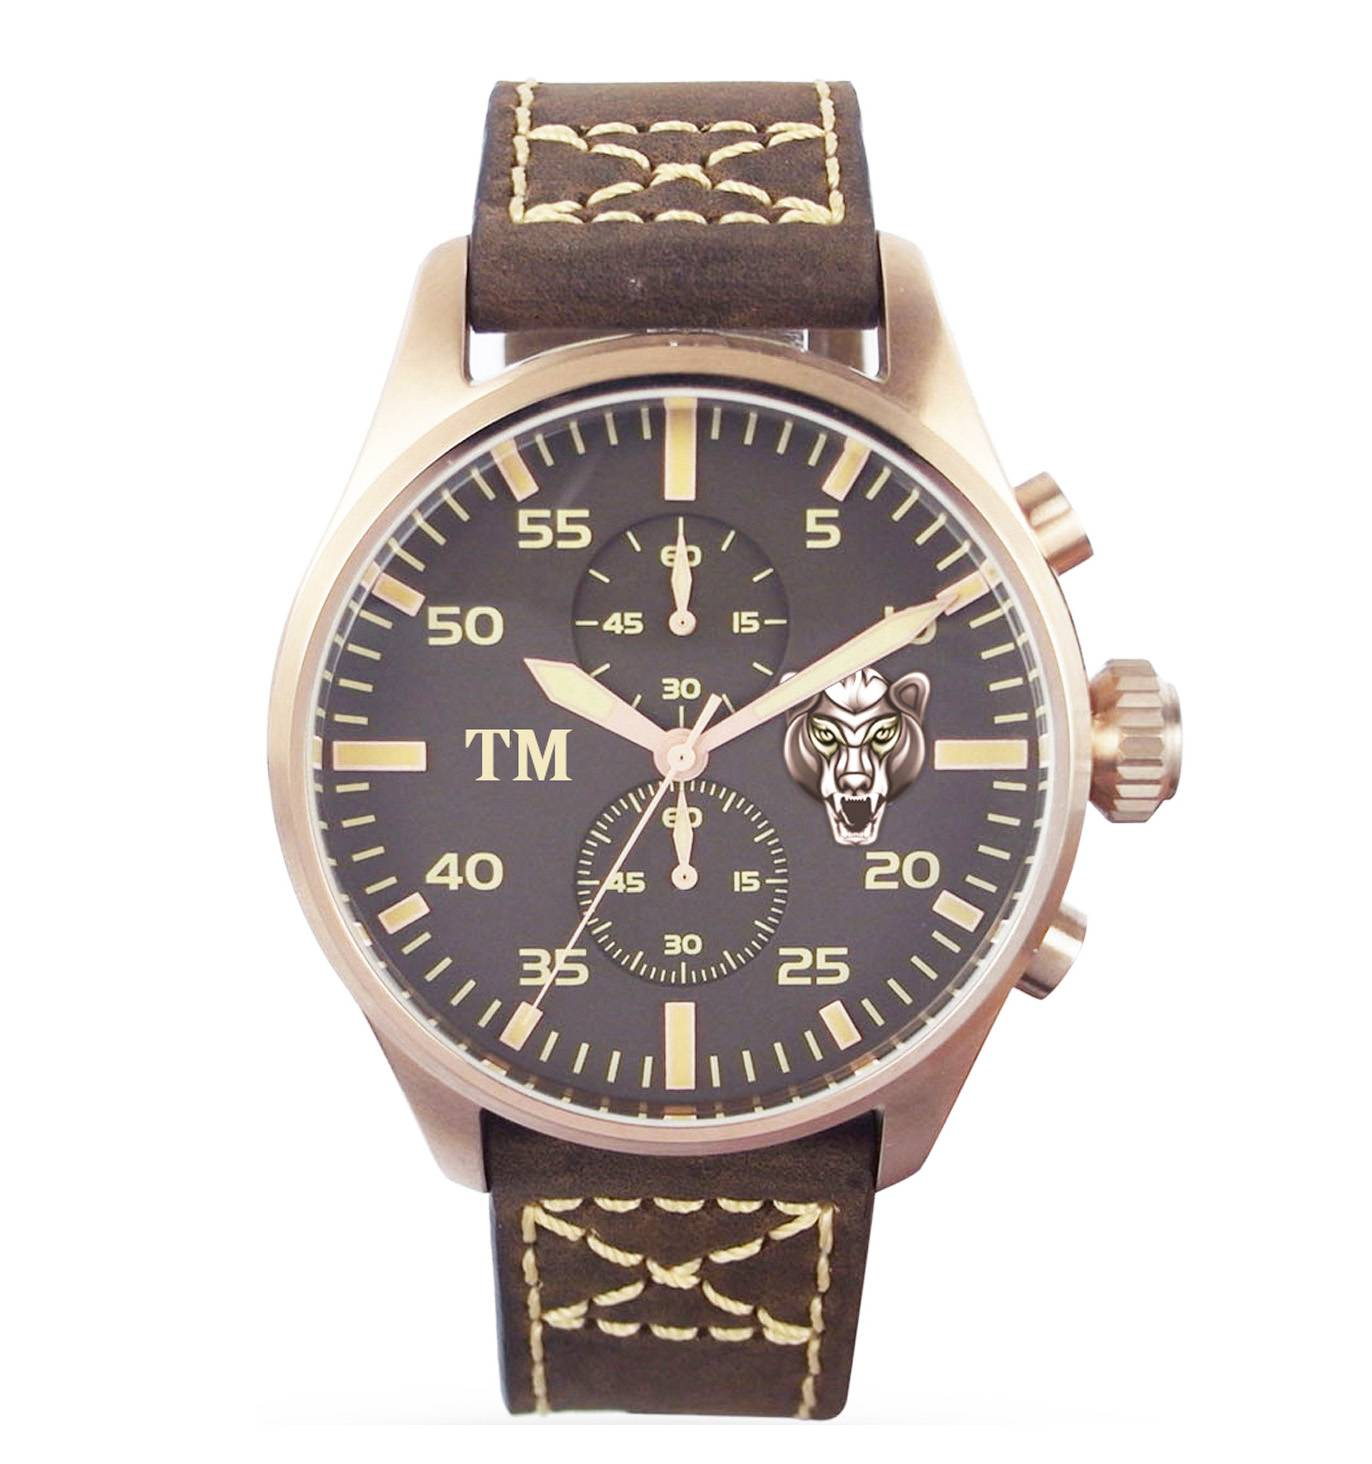 sports watch diving watch classical style